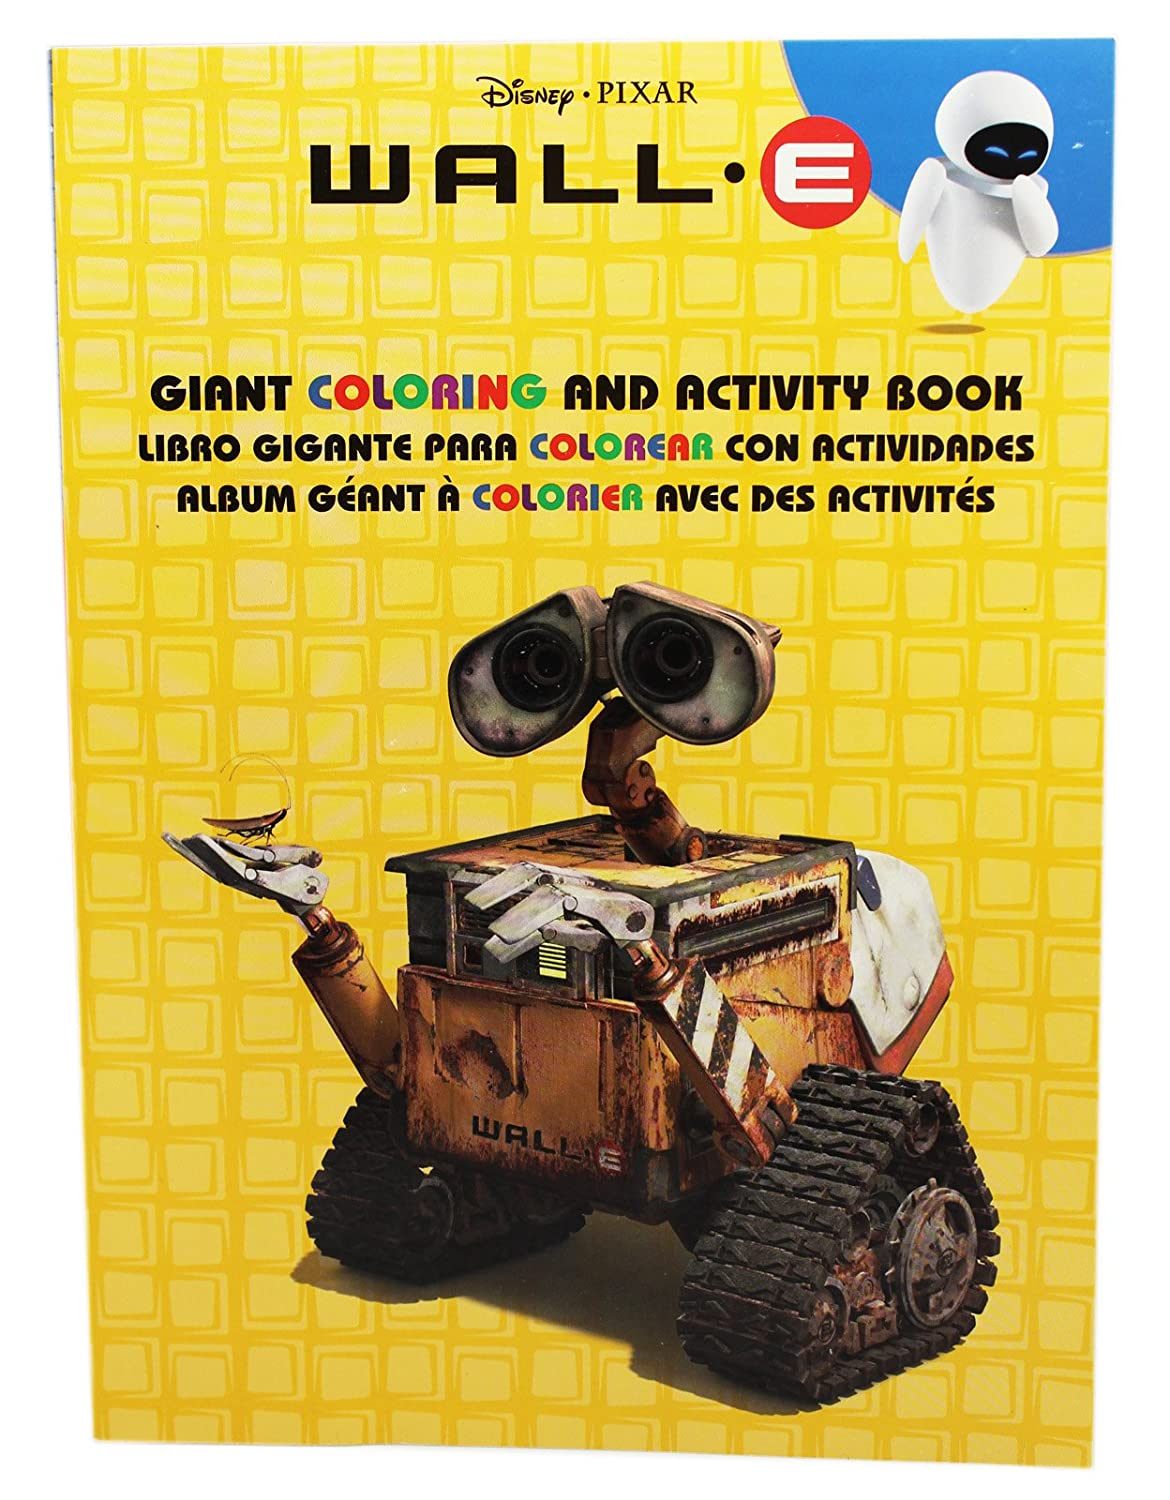 Wall E Coloring Disney Coloring baby pooh bear pictures coloring pages